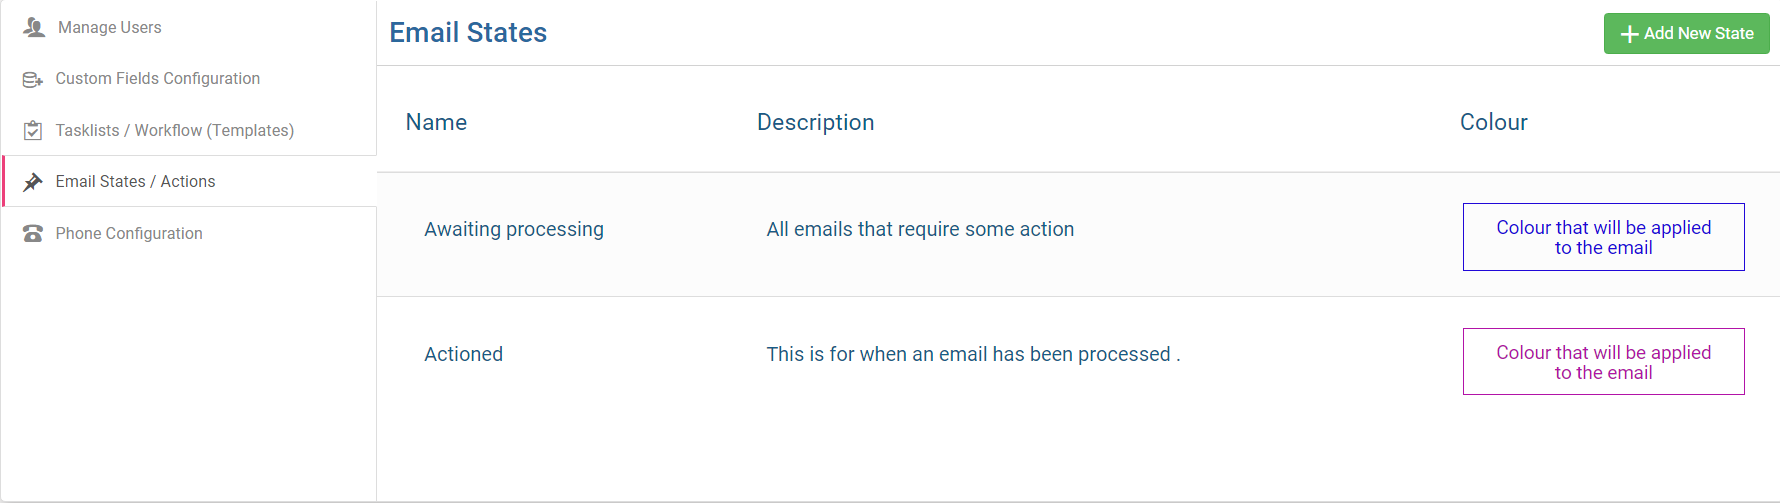 Email_-_Editing_email_states.png